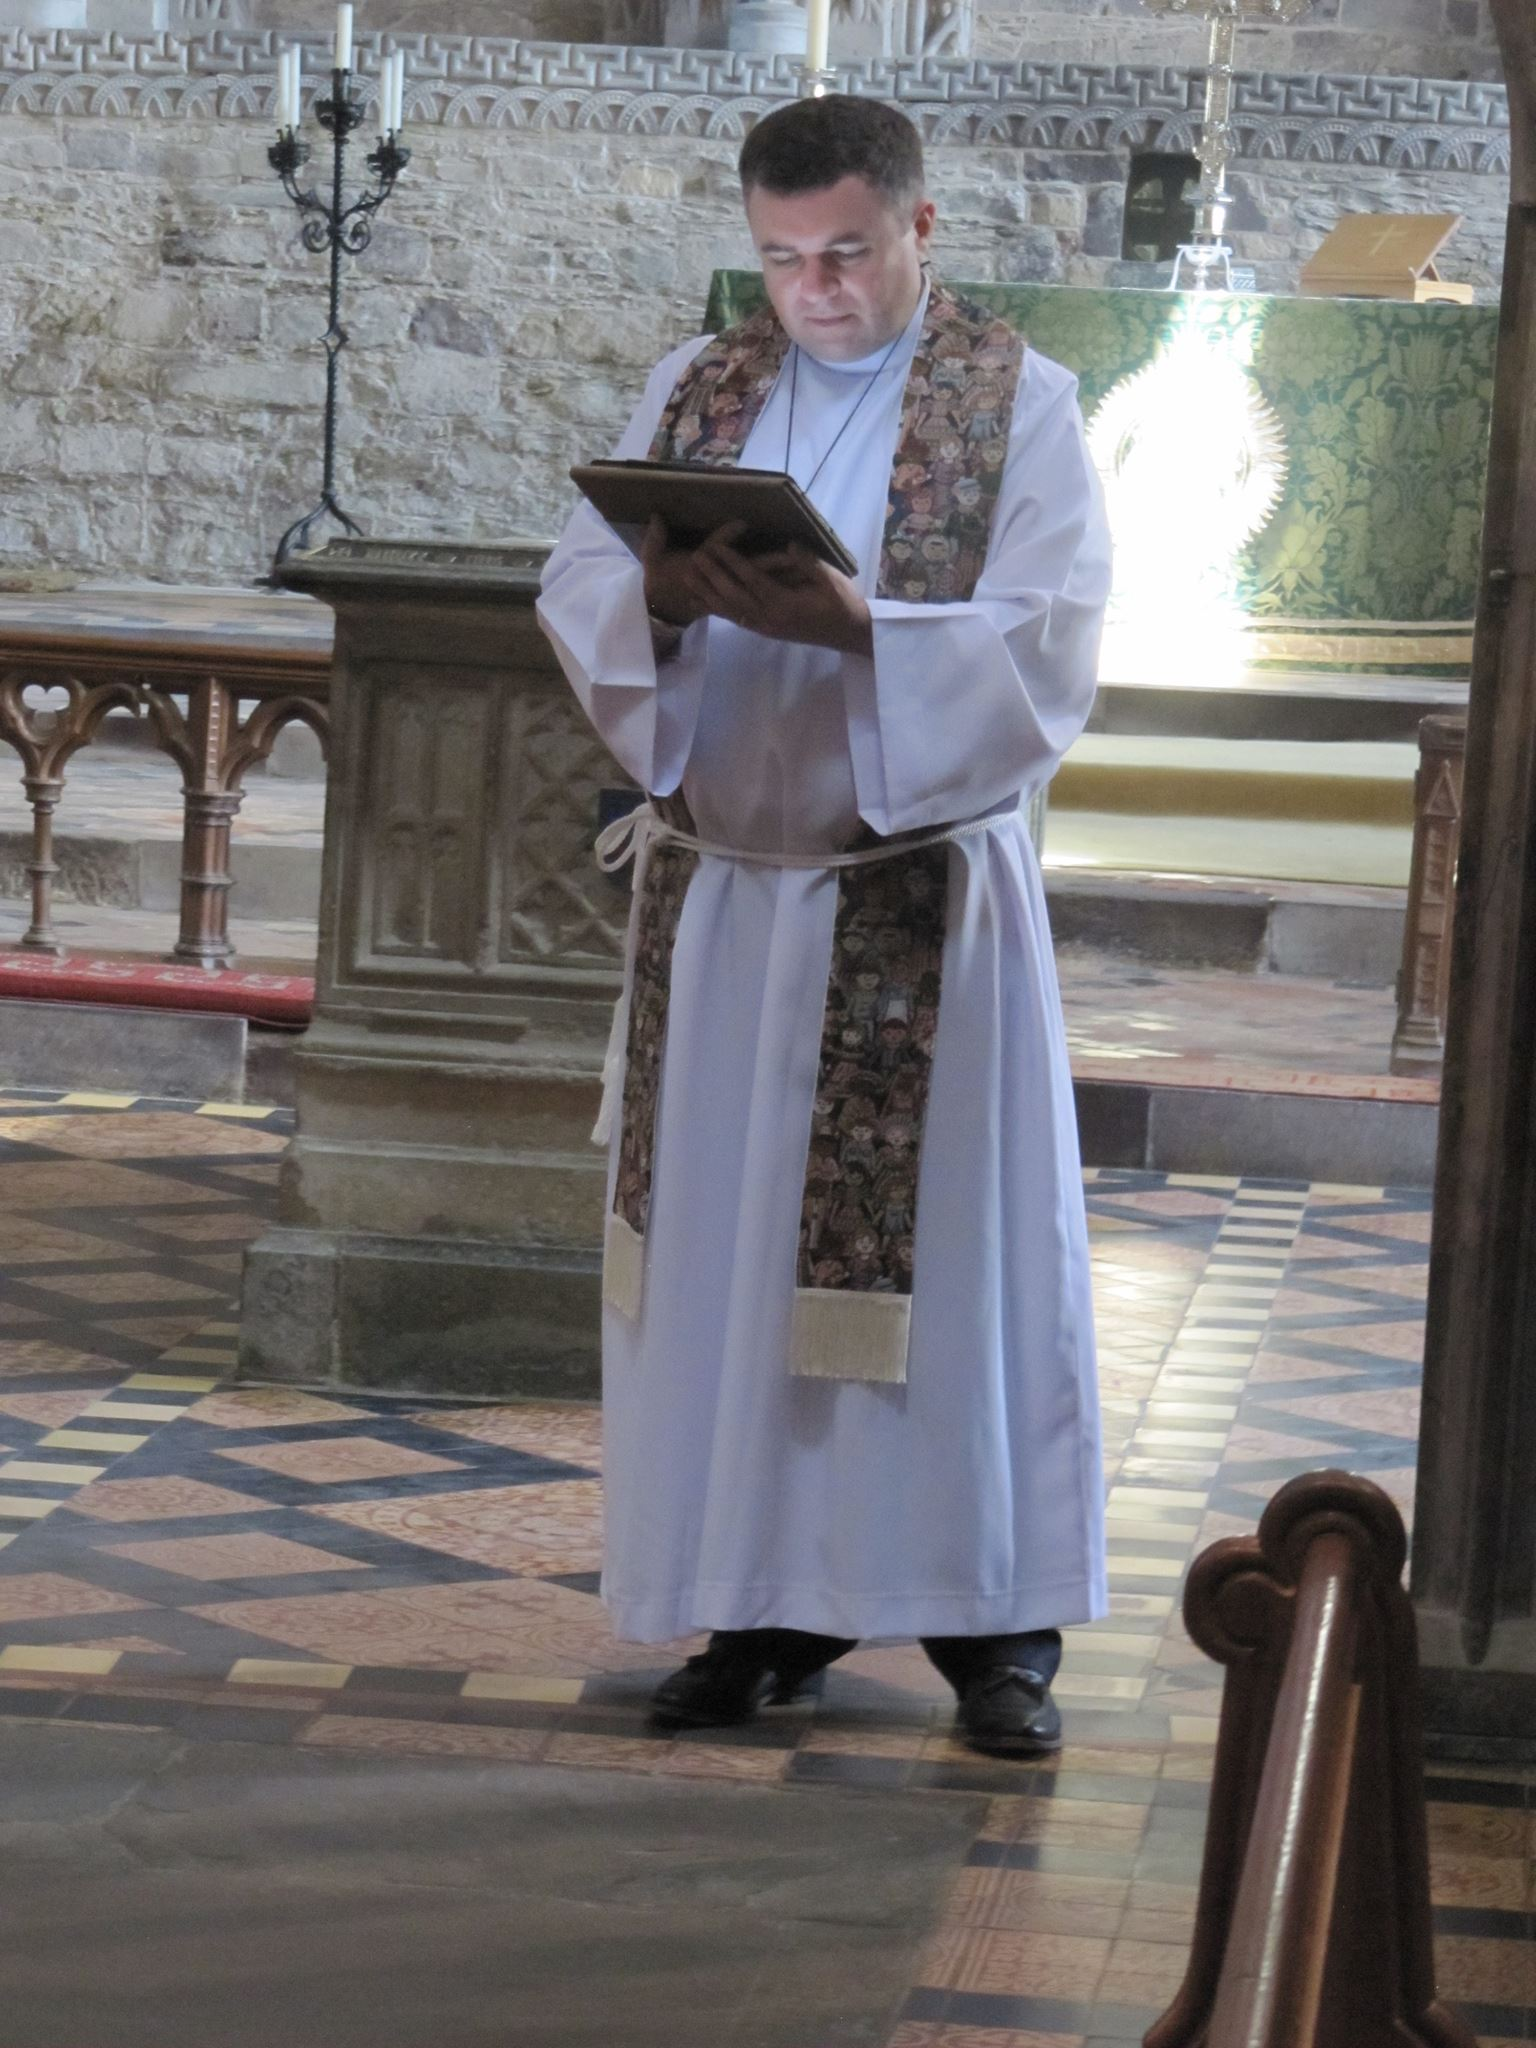 Bishop Steven Lyn Evans St David's Cathedral